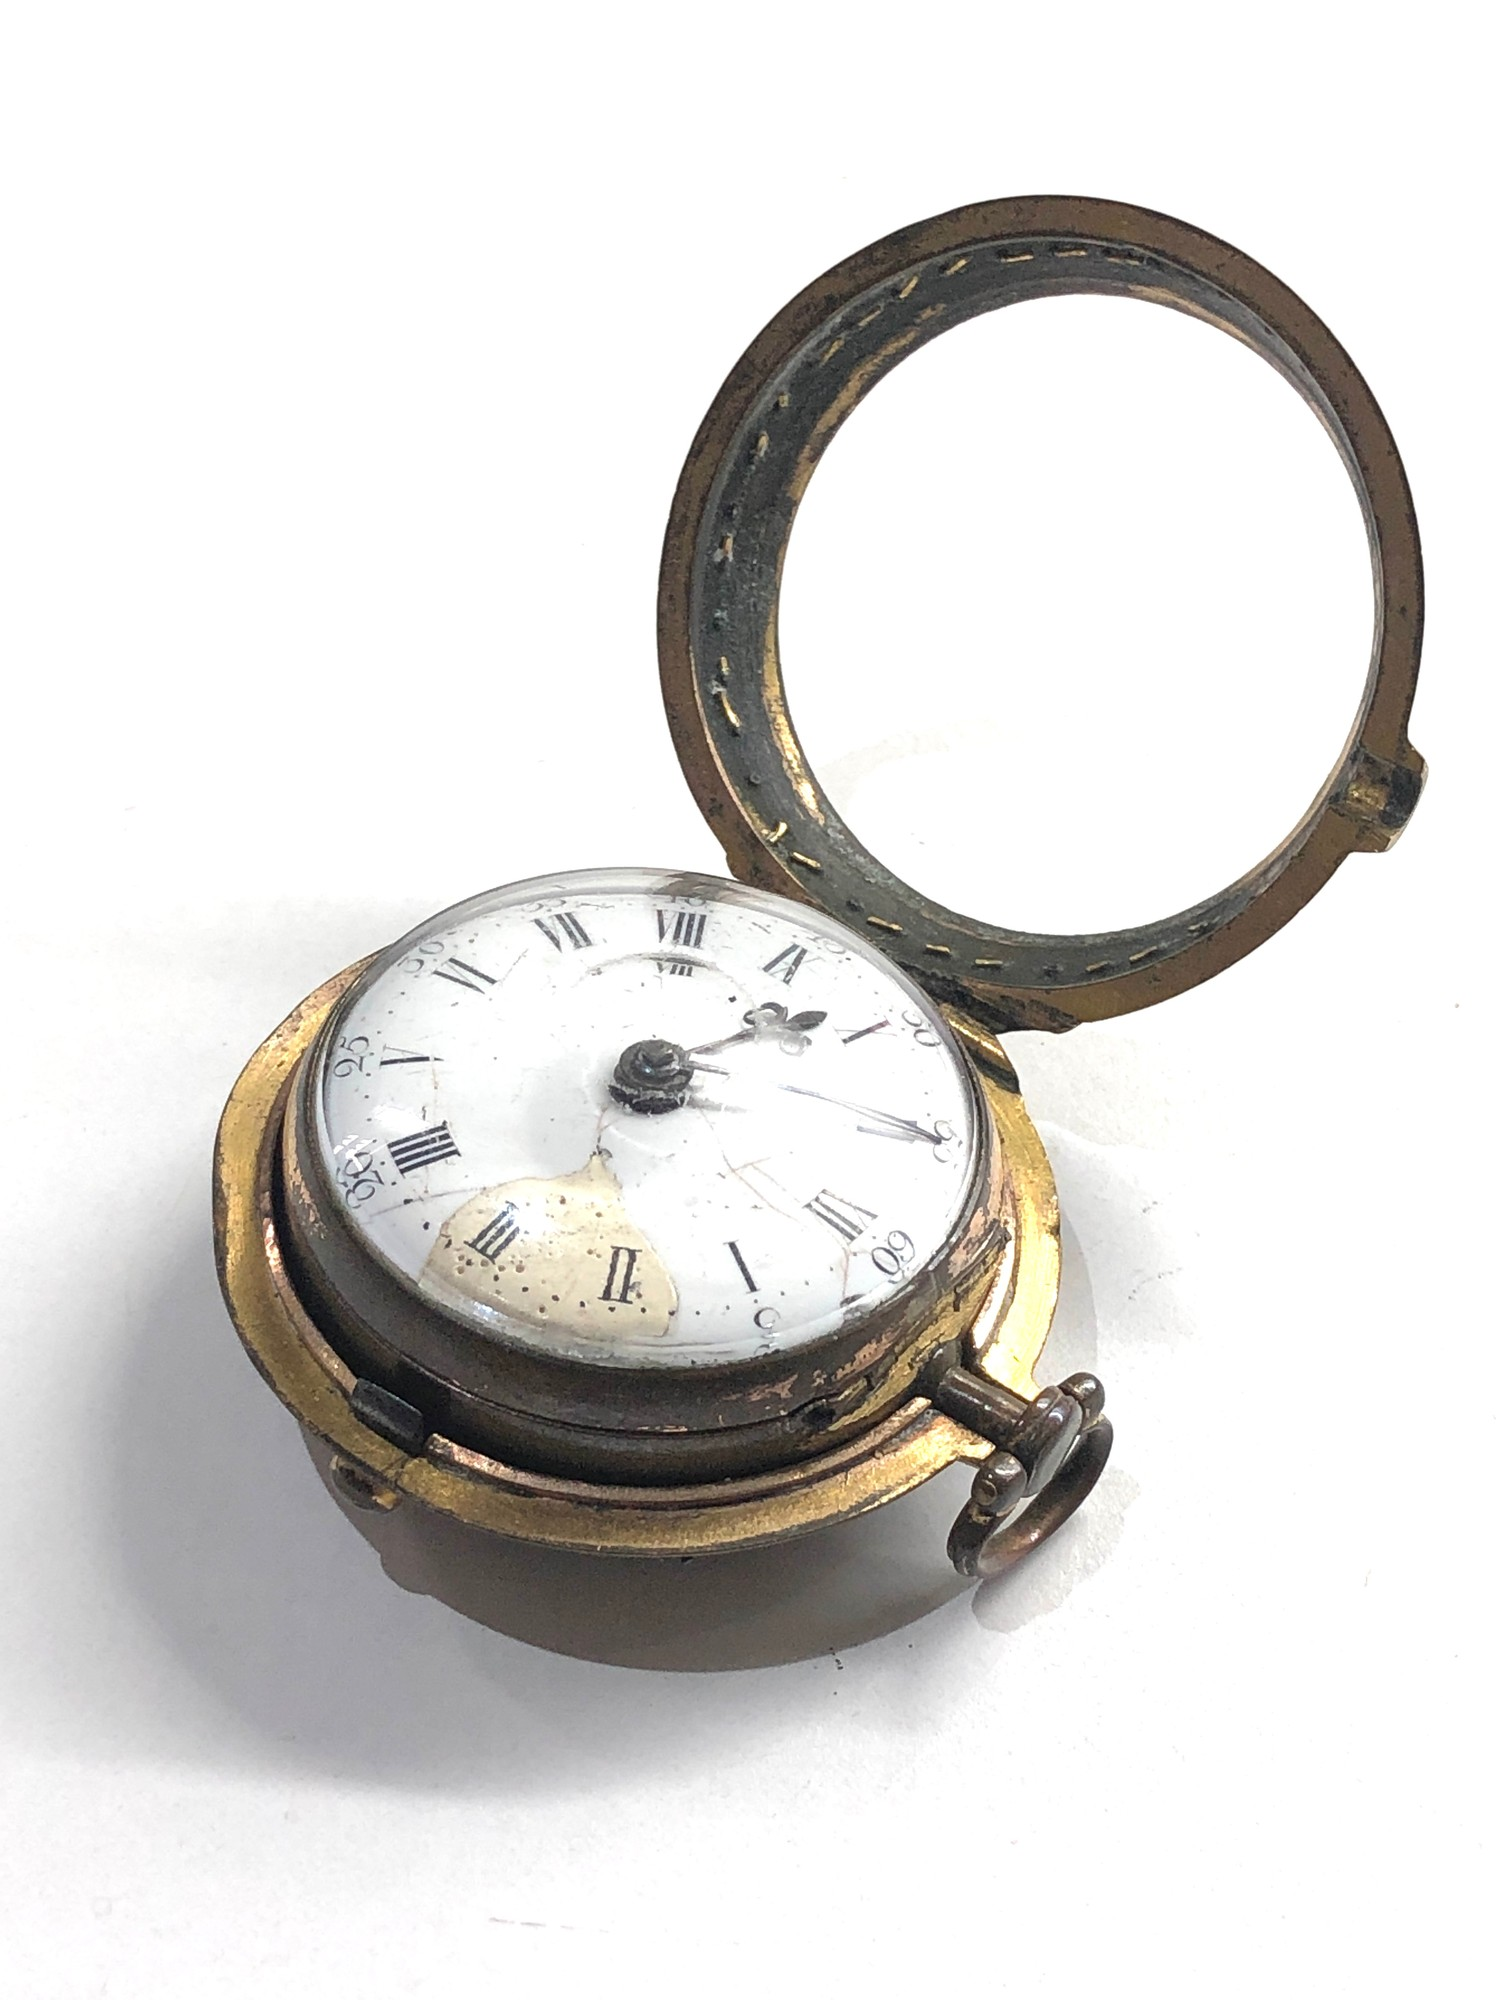 18th century London paircase verge pocket watch the watch does wind and tick dial damaged outer case - Image 8 of 9